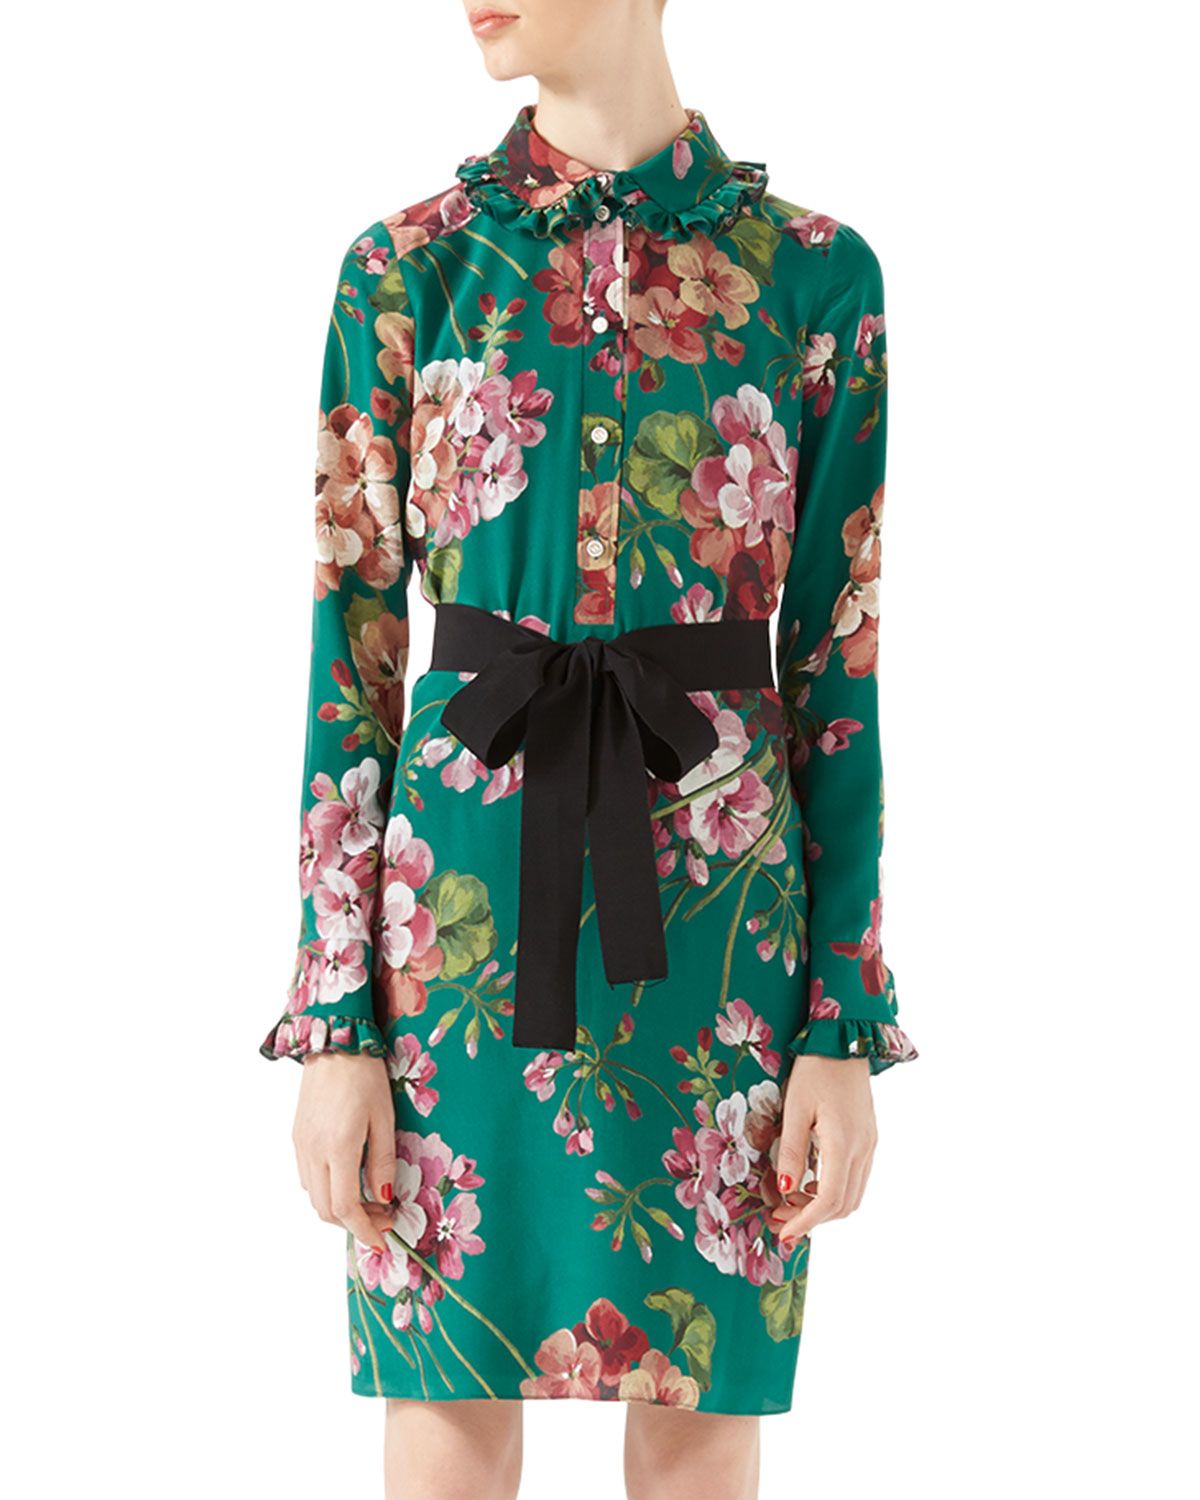 251488ba Gucci Blooms Print Silk Shirt Dress in Green - Lyst